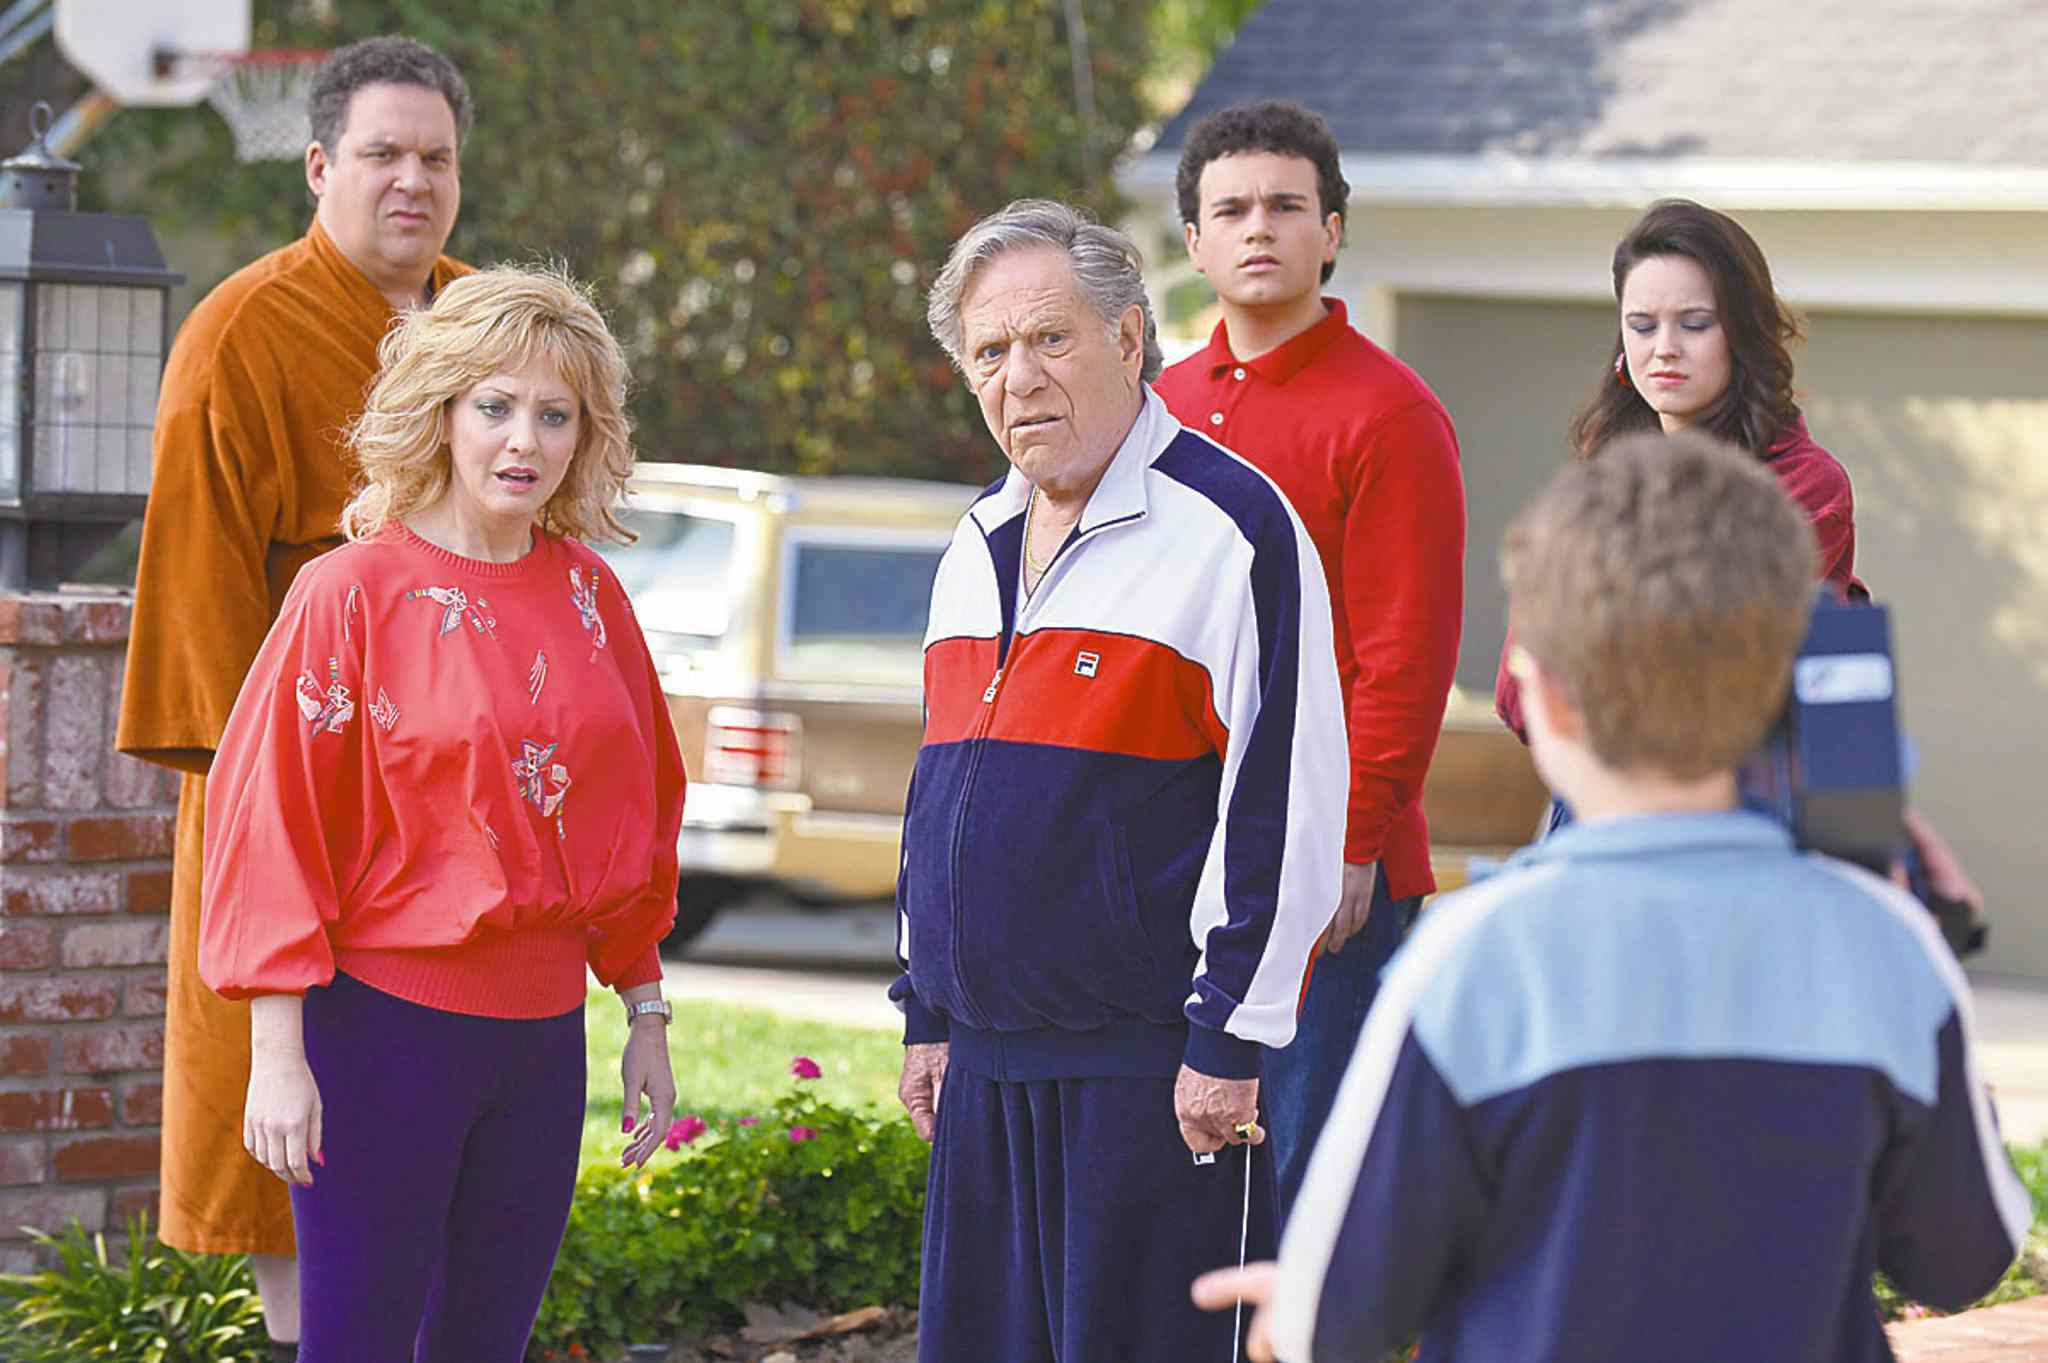 Eric McCandless / ABCEric McCandless / ABCFrom left, Jeff Garlin, Wendi McLendon-Covey, George Segal, Troy Gentile, Sean Giambrone and Hayley Orrantia in a scene from The Goldbergs.